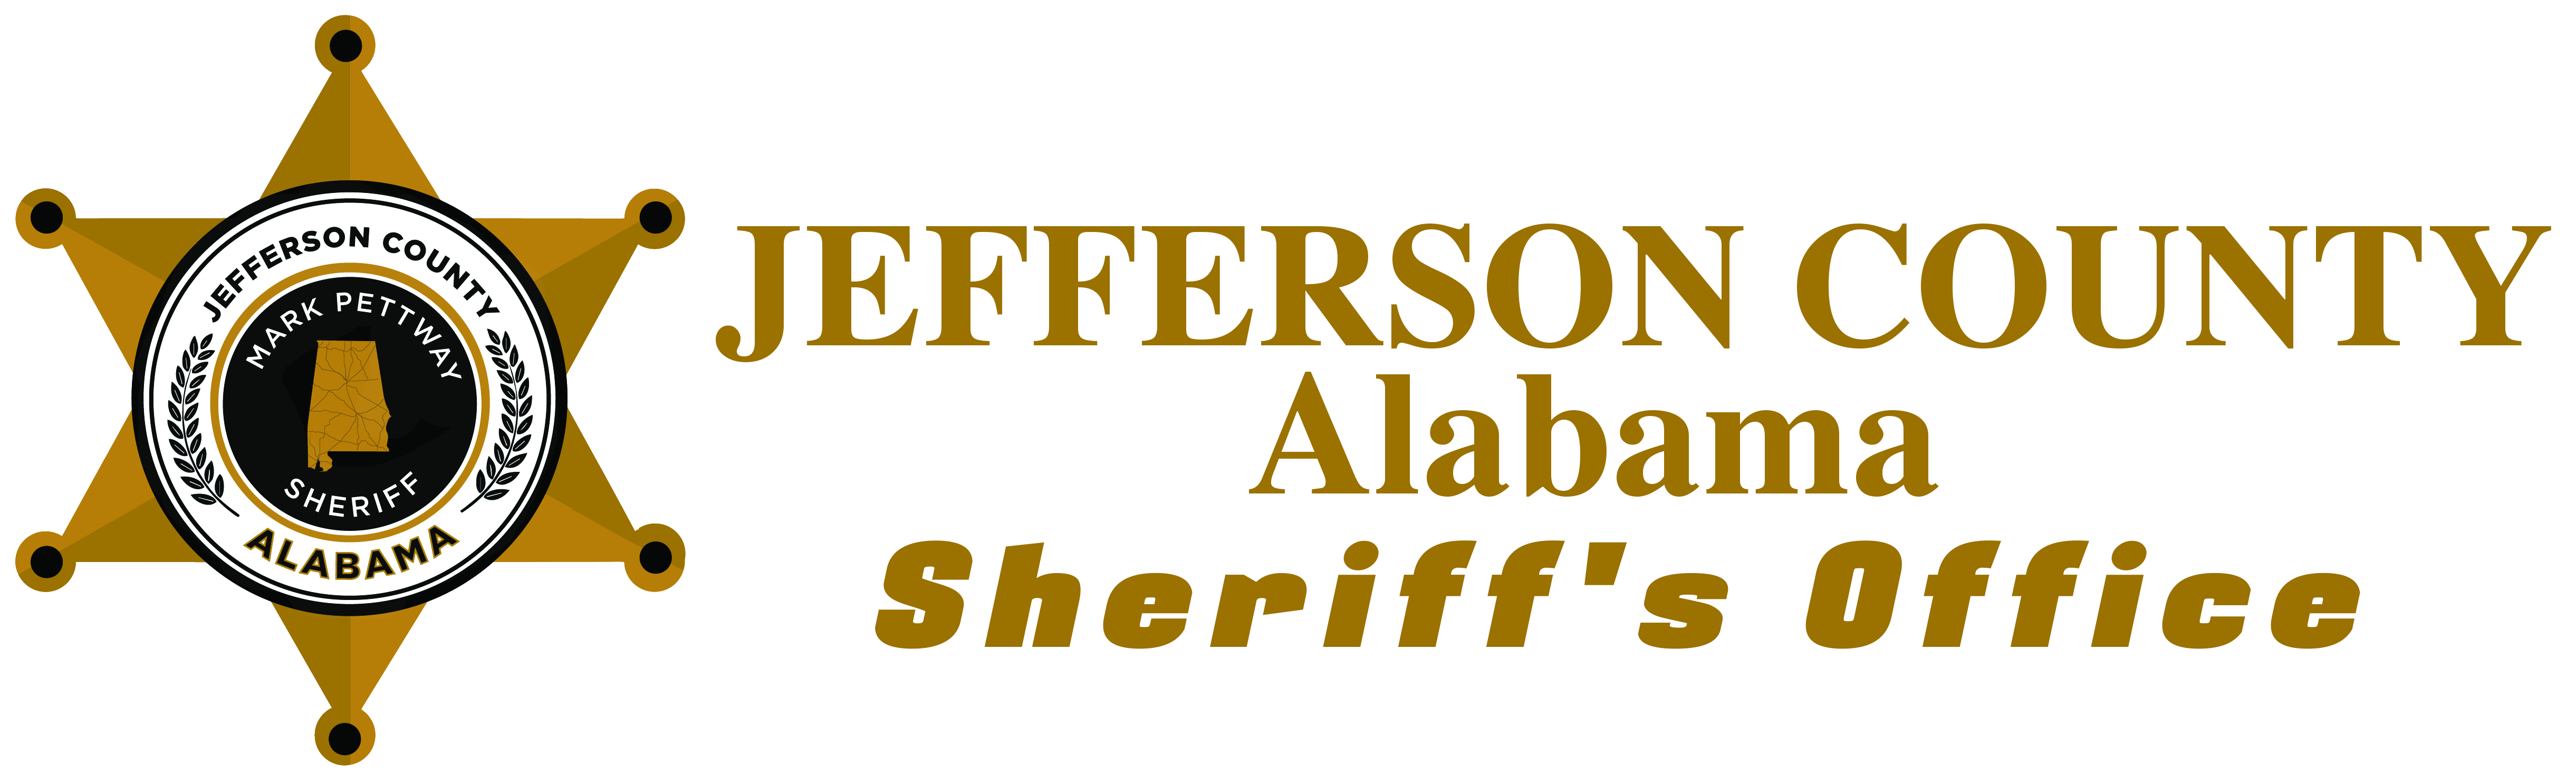 Jefferson-County-Sheriff-Logo-01trans1cropb_Alabama2